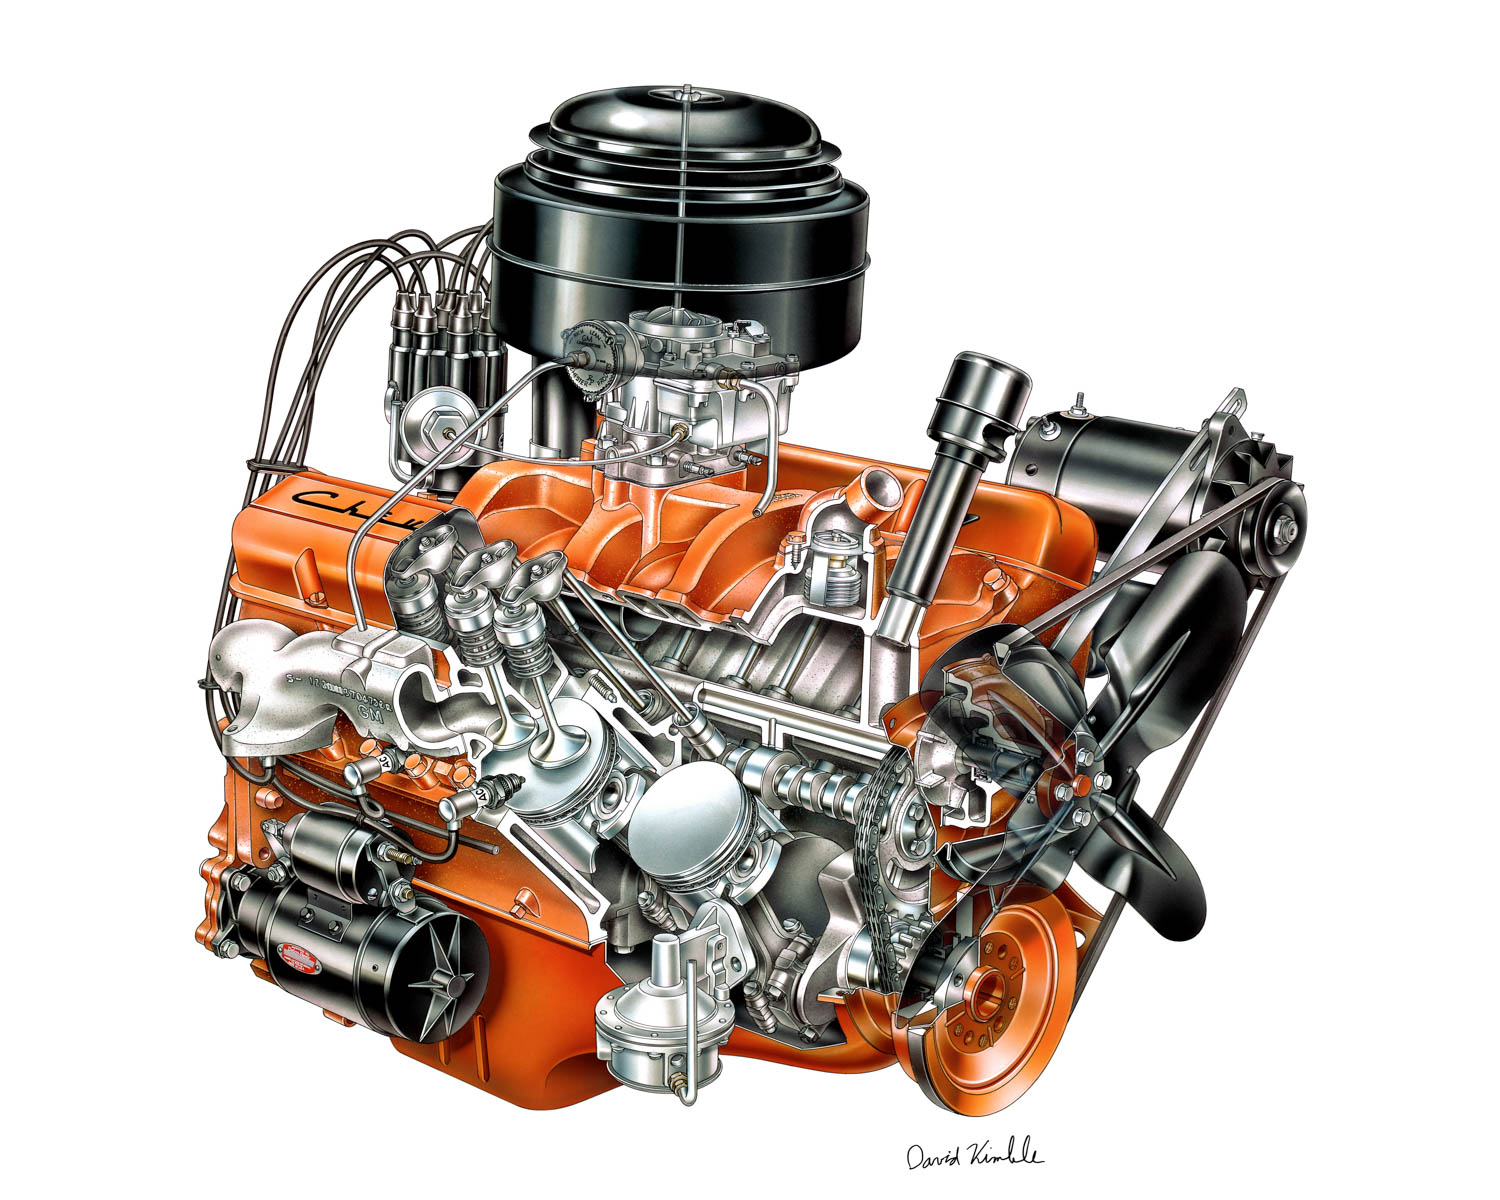 The first Chevy small-block V-8 debuted in 1955 and produced 162 horsepower. Its unique combination of simplicity, compactness, and high power potential have made it one of the most beloved engines ever built.